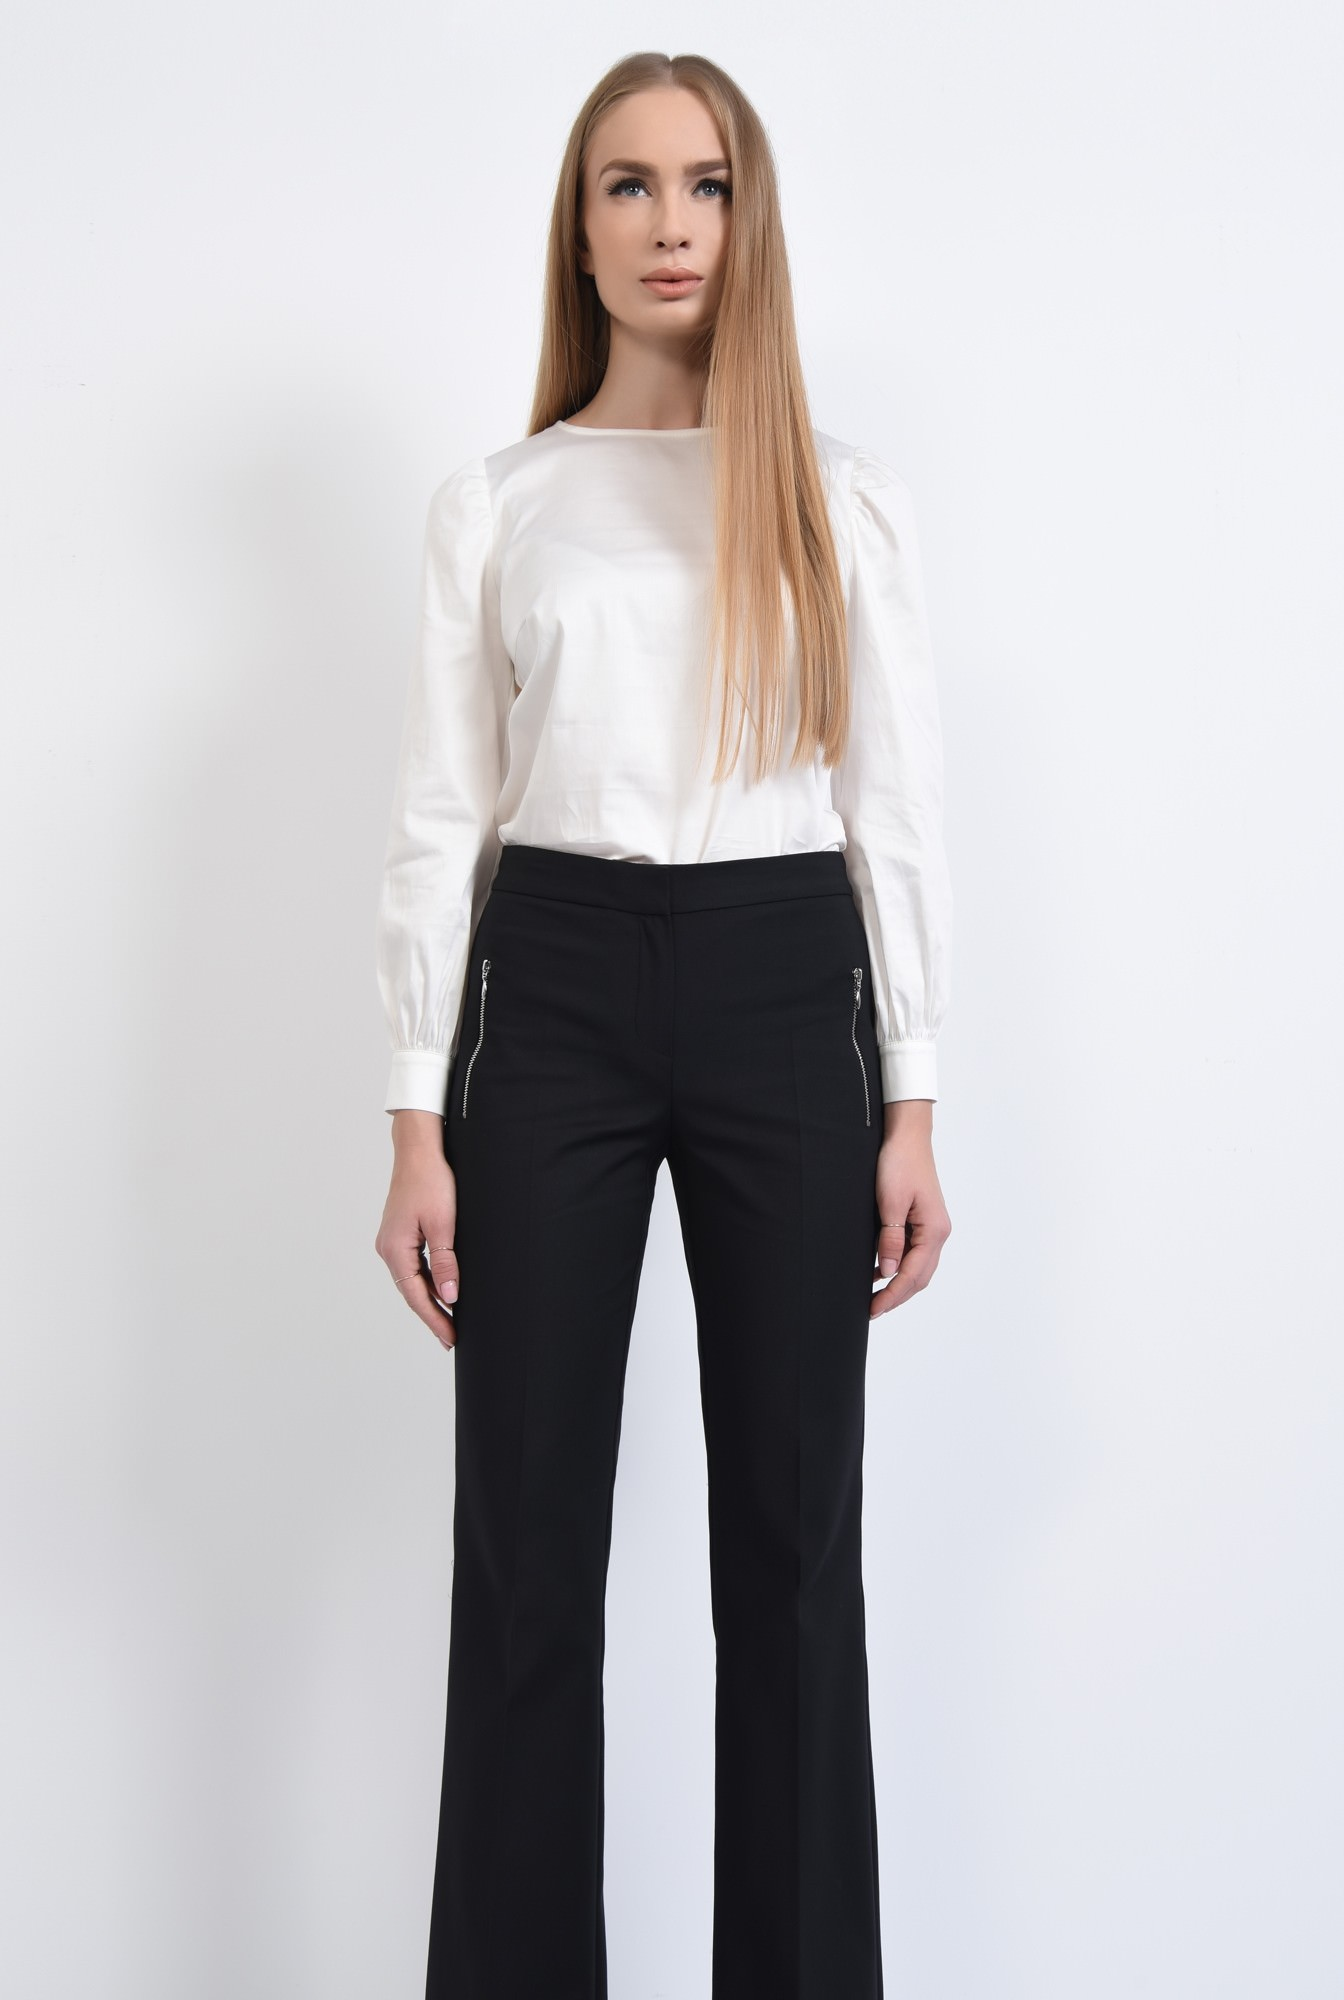 2 - PANTALON OFFICE PT 181-NEGRU